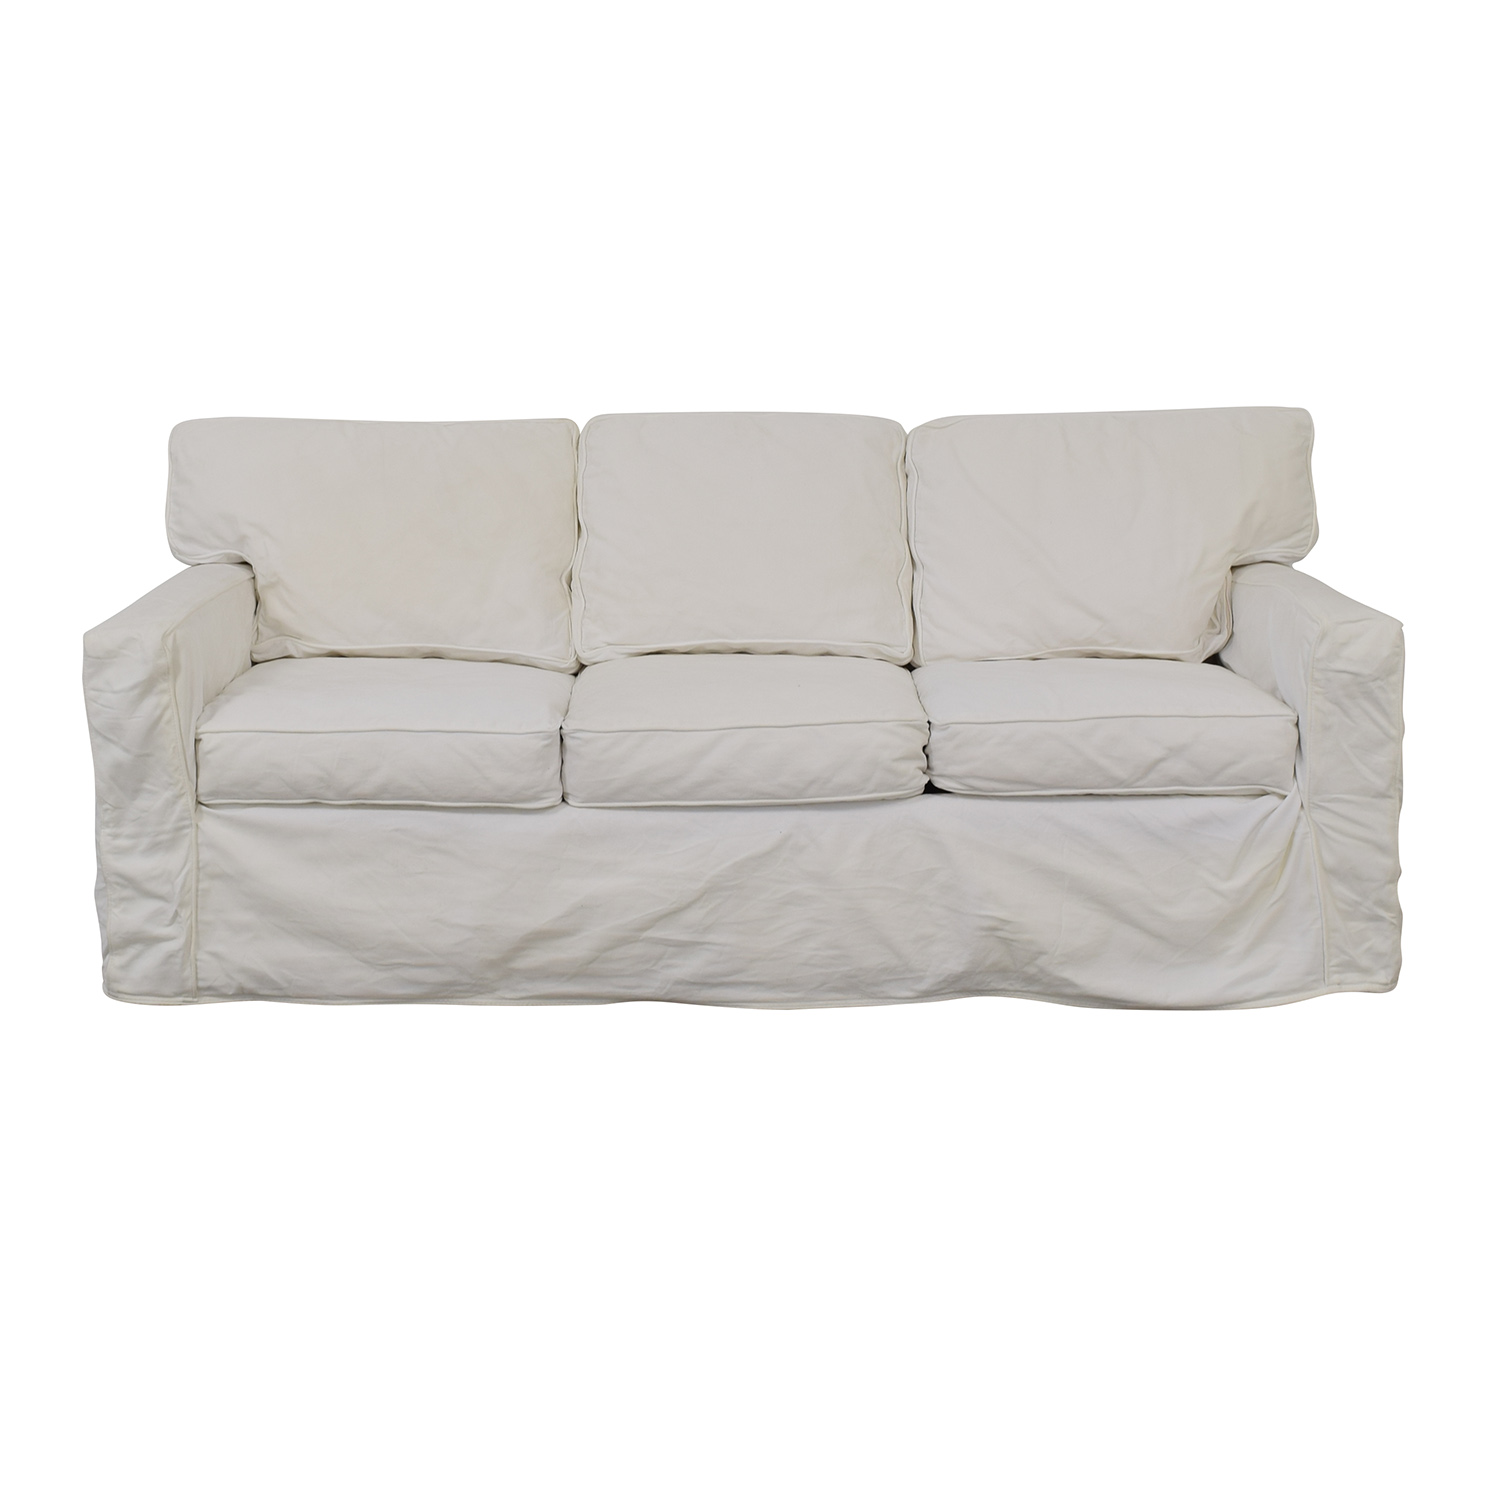 Pottery Barn Mitchell Gold PB Square Sofa / Sofas